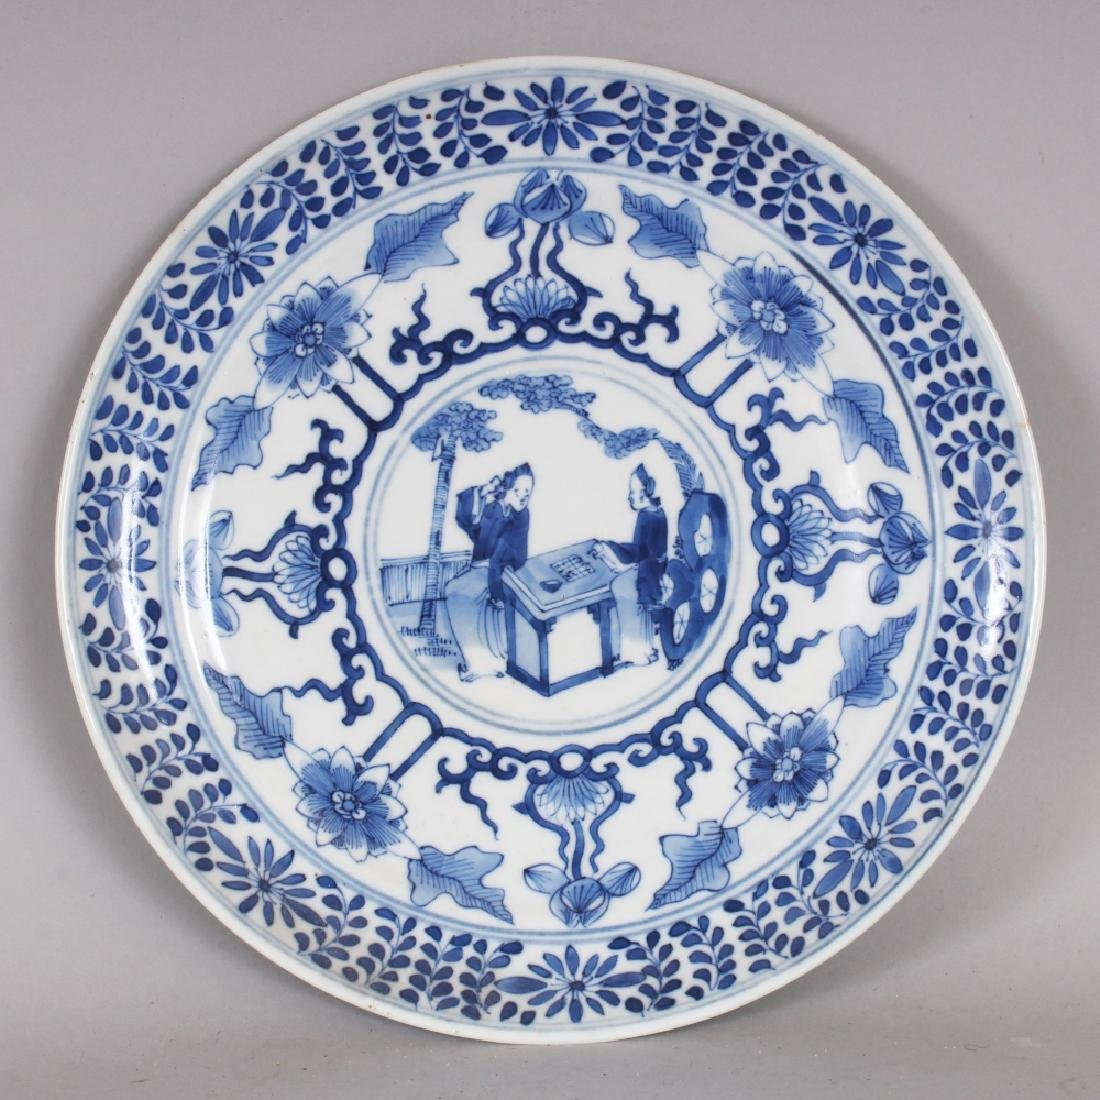 ANOTHER 19TH CENTURY CHINESE BLUE & WHITE PORCELAIN